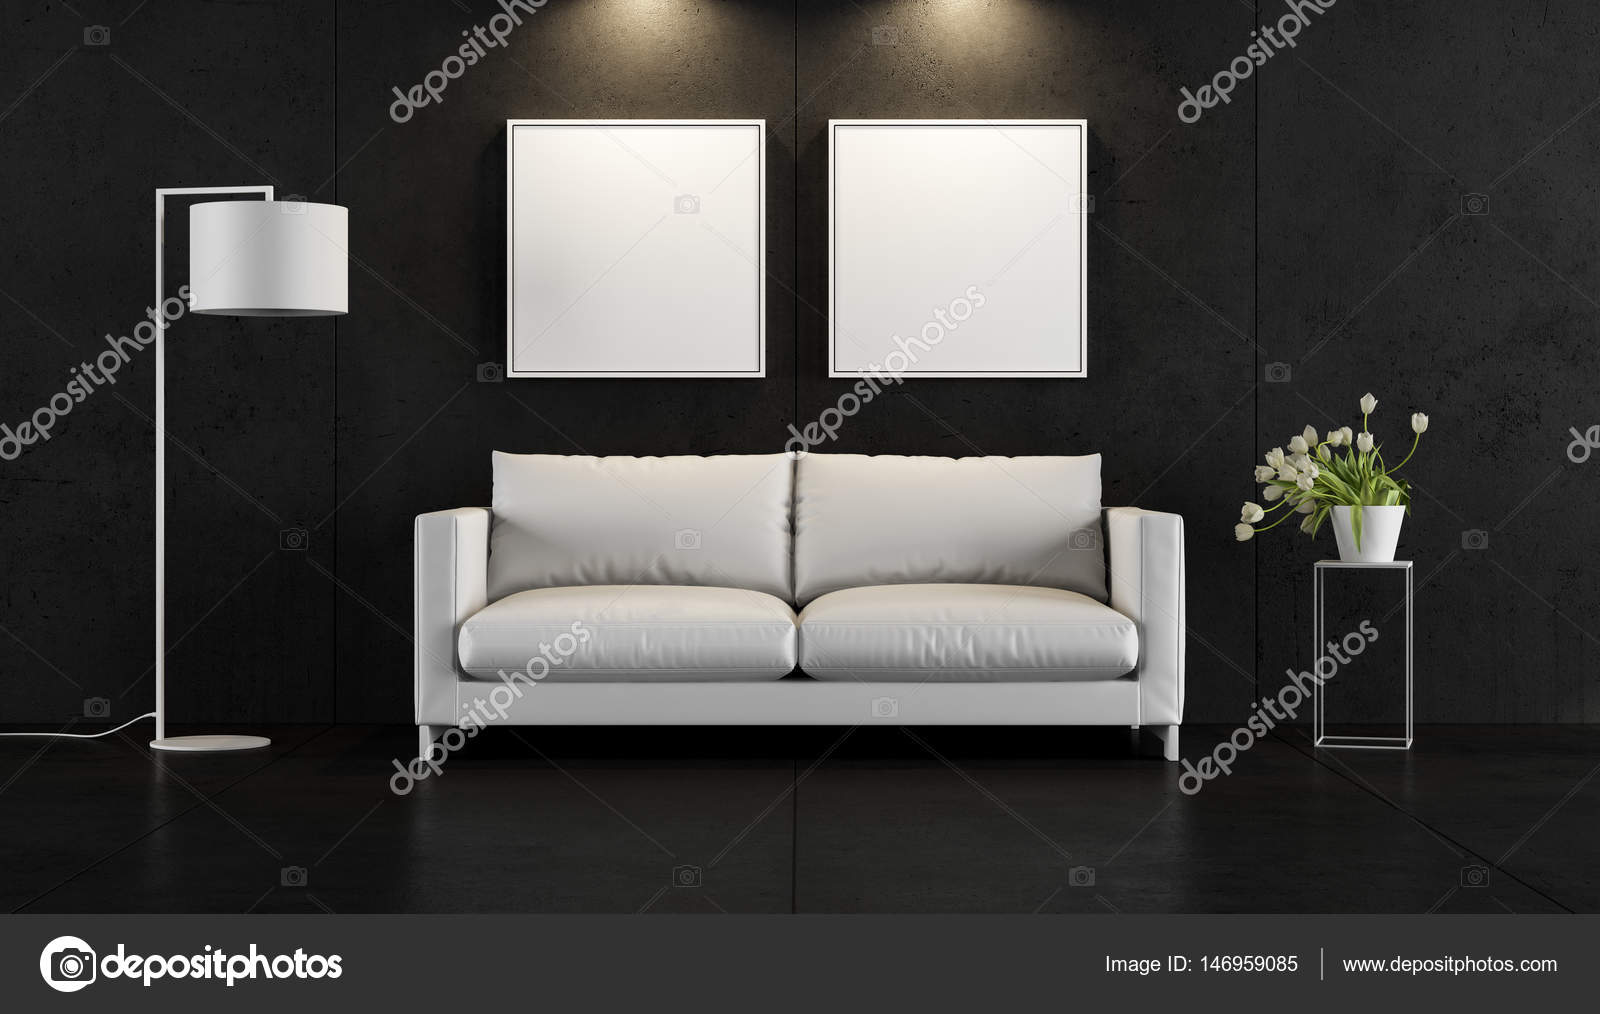 https://st3.depositphotos.com/1047404/14695/i/1600/depositphotos_146959085-stock-photo-black-and-white-living-room.jpg